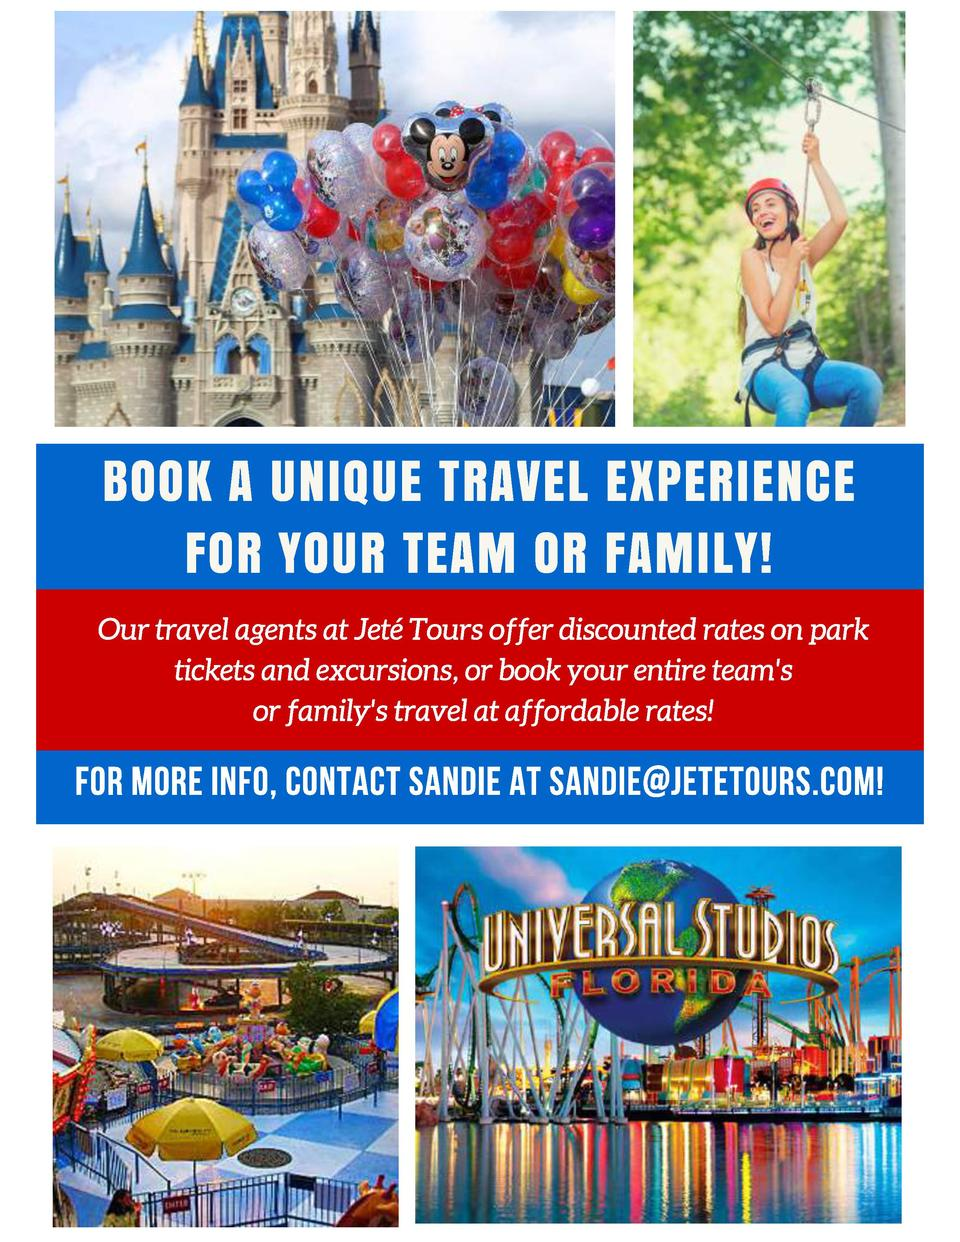 BOOK A UNIQUE TRAVEL EXPERIENCE FOR YOUR TEAM OR FAMILY